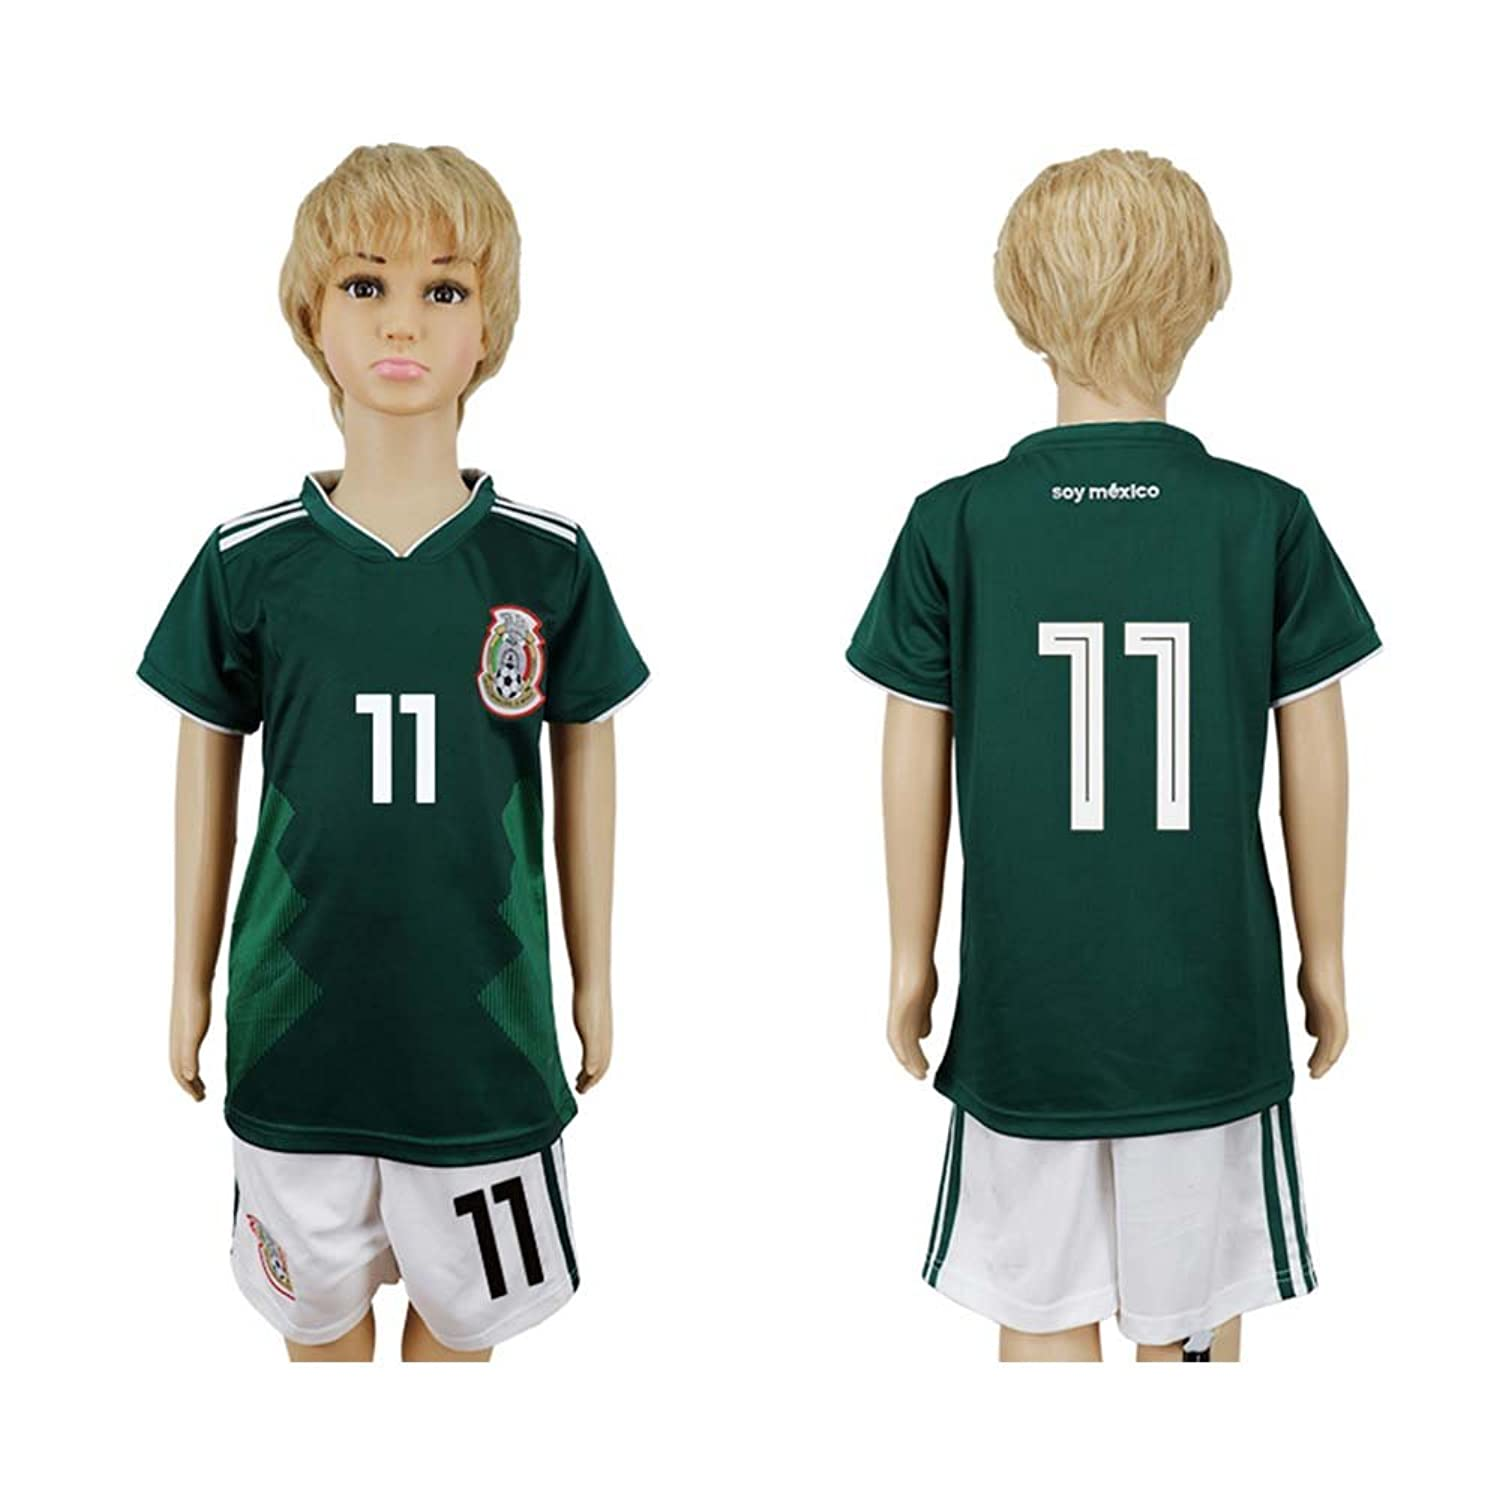 Puizozi SHIRT ボーイズ B07D3K47N720# (5 to 6 Years Old)